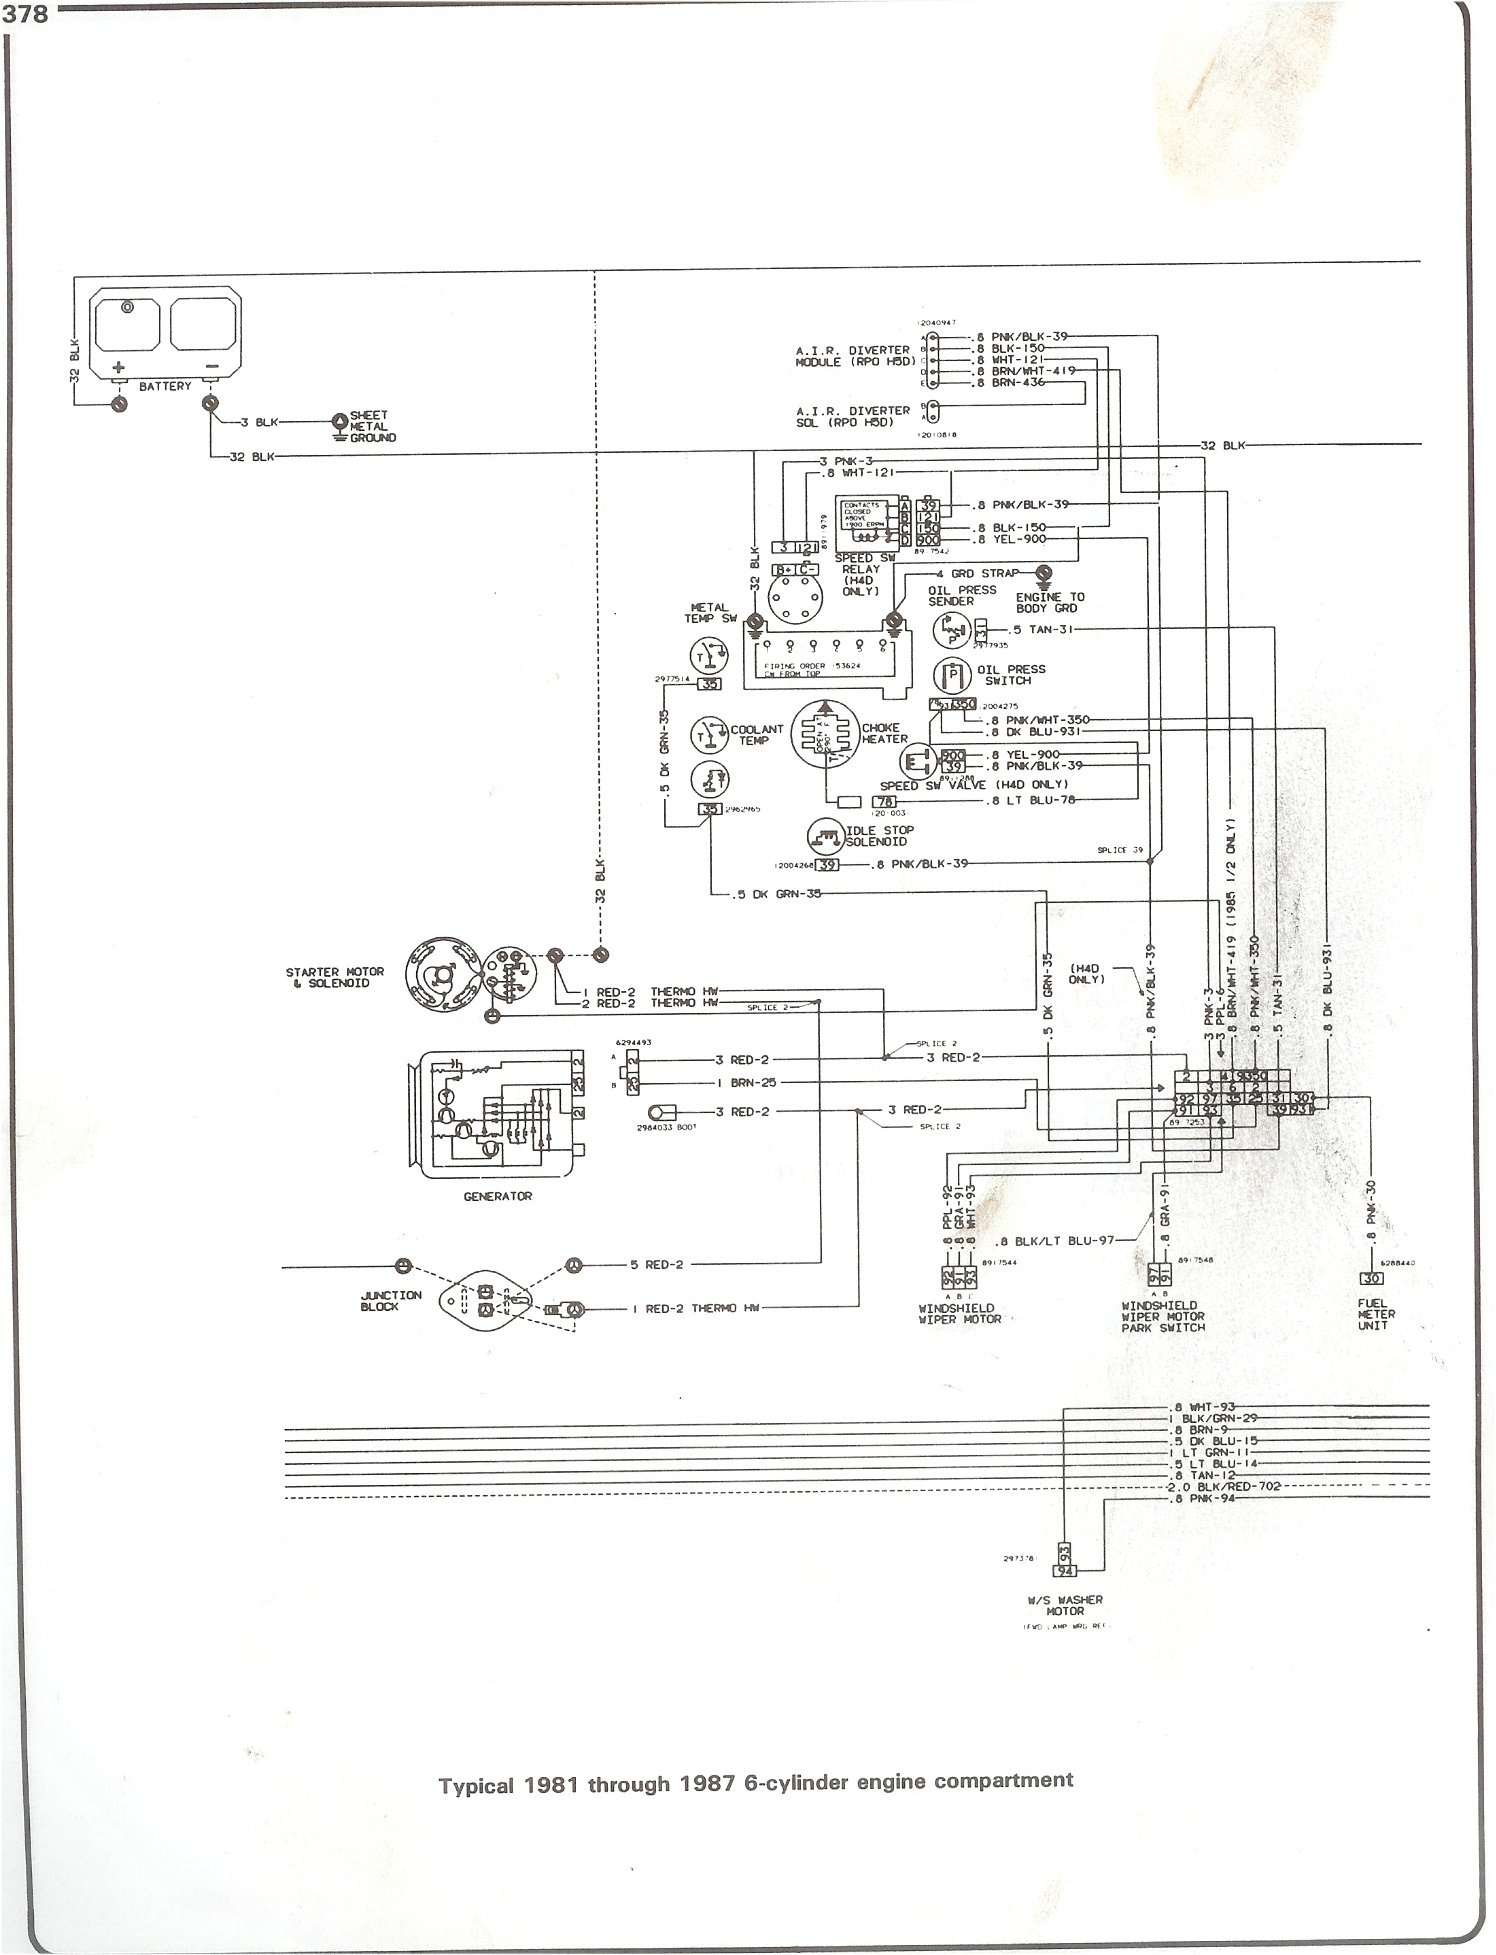 1973 Camaro Wiring Diagram Free For You Fuse Box Also 1969 Ignition On Rh 17 Jennifer Retzke De